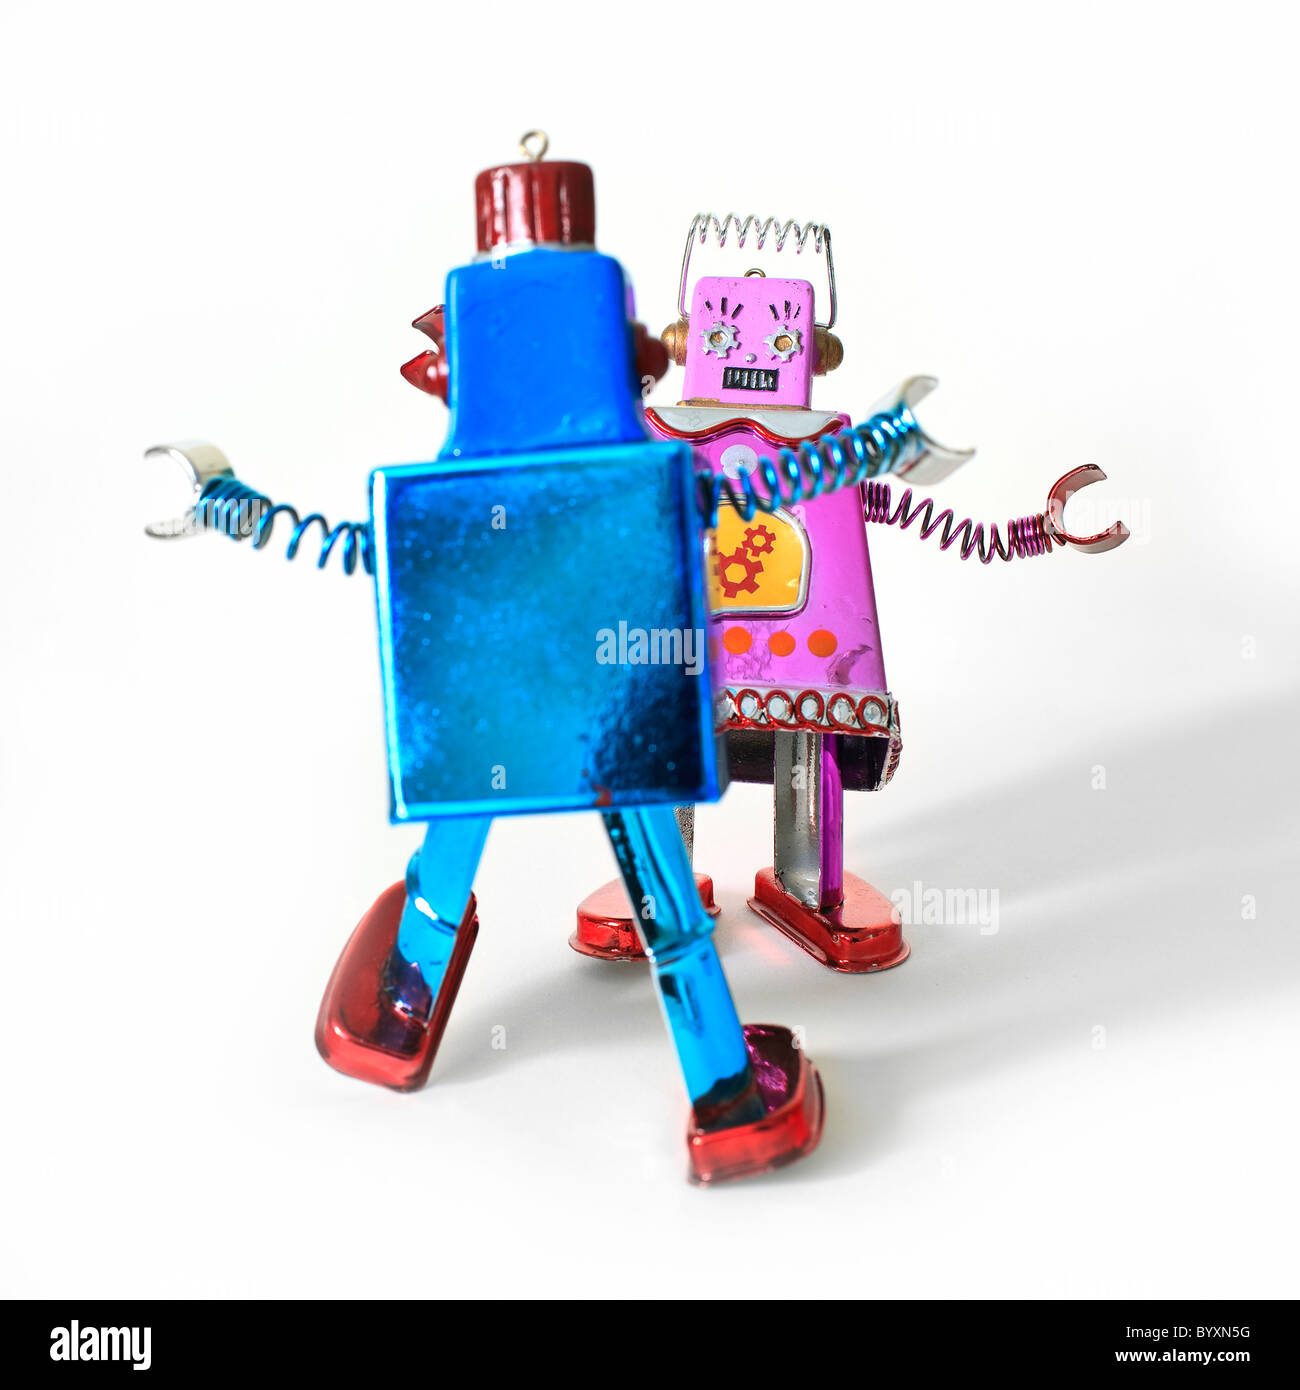 Dancing toy robots, male and female likeness. Stock Photo